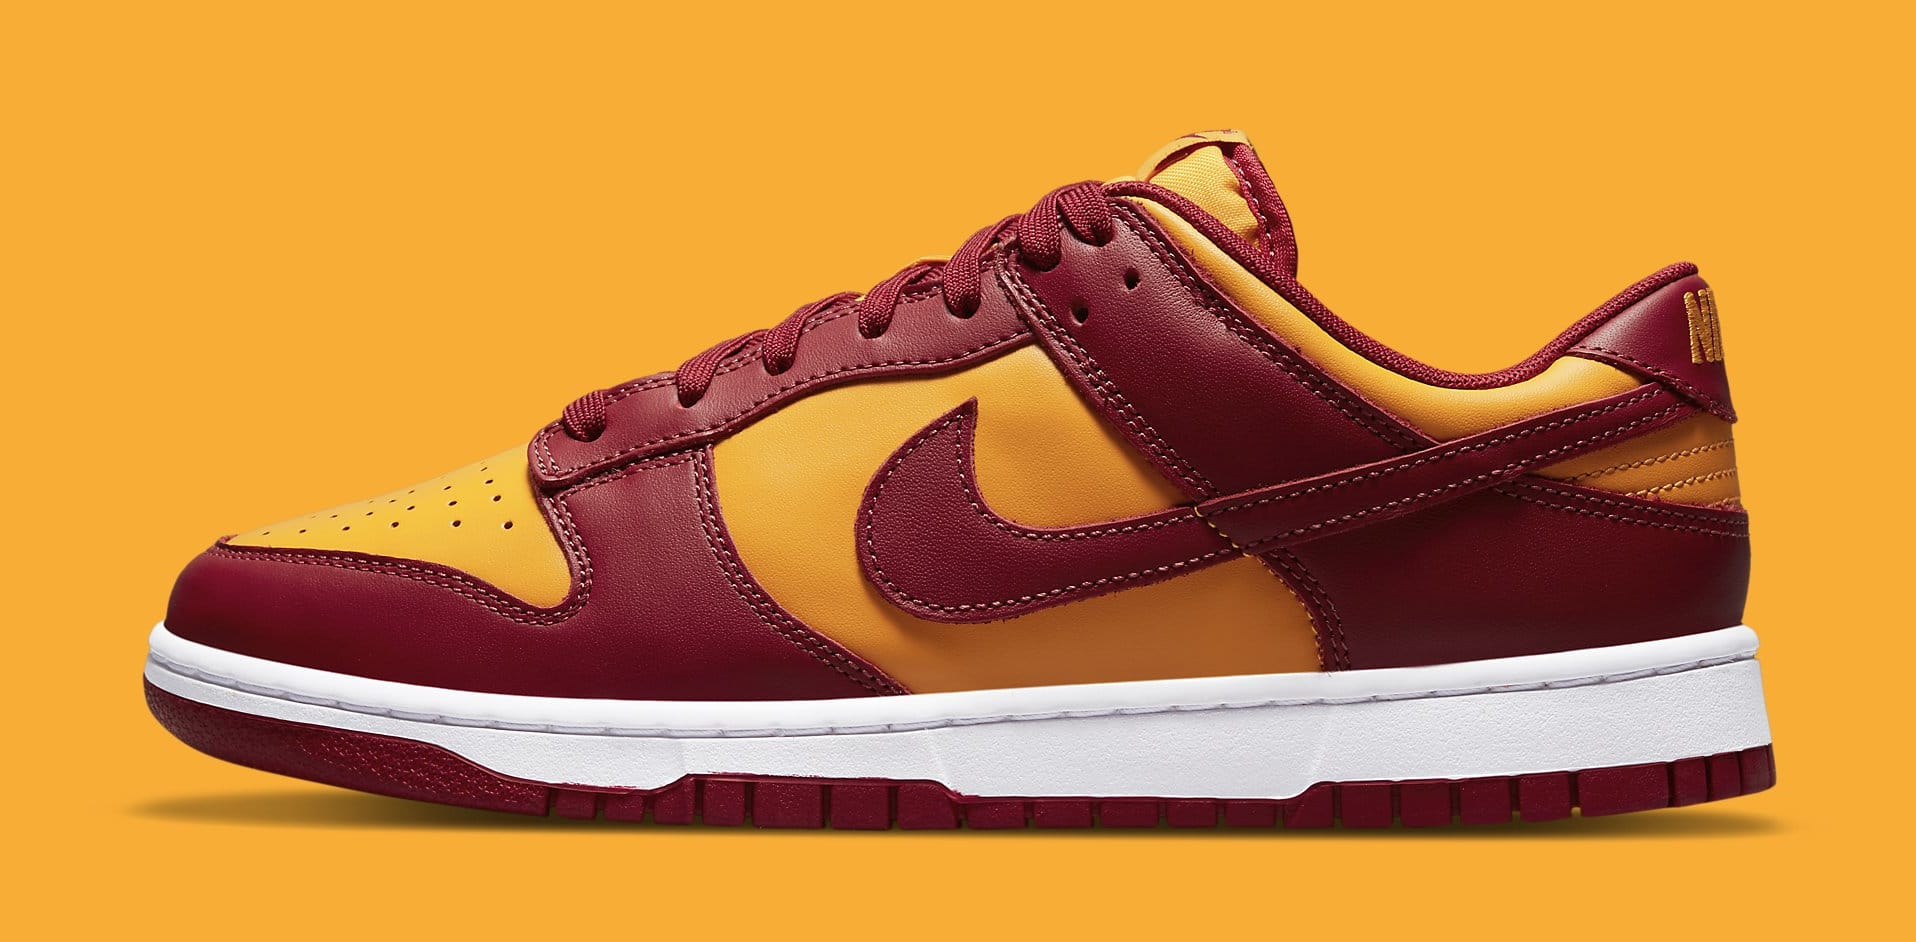 Nike Dunk Low 'Midas Gold' DD1391-701 Lateral